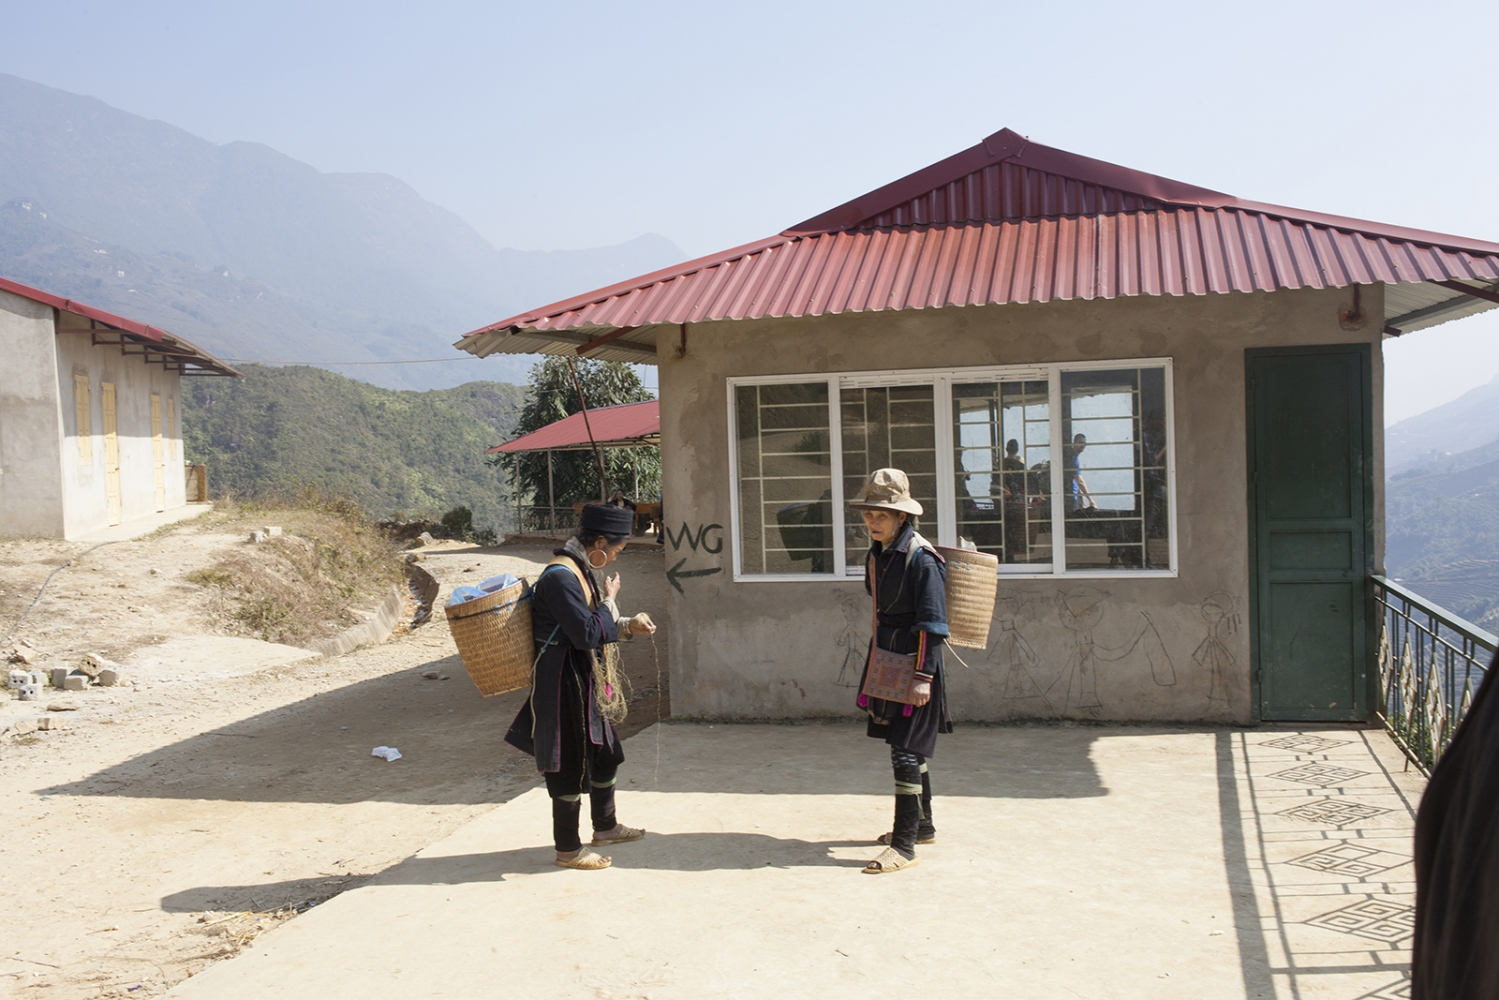 Two Hmong ladies having a break from trying to sell handicrafts to tourists.